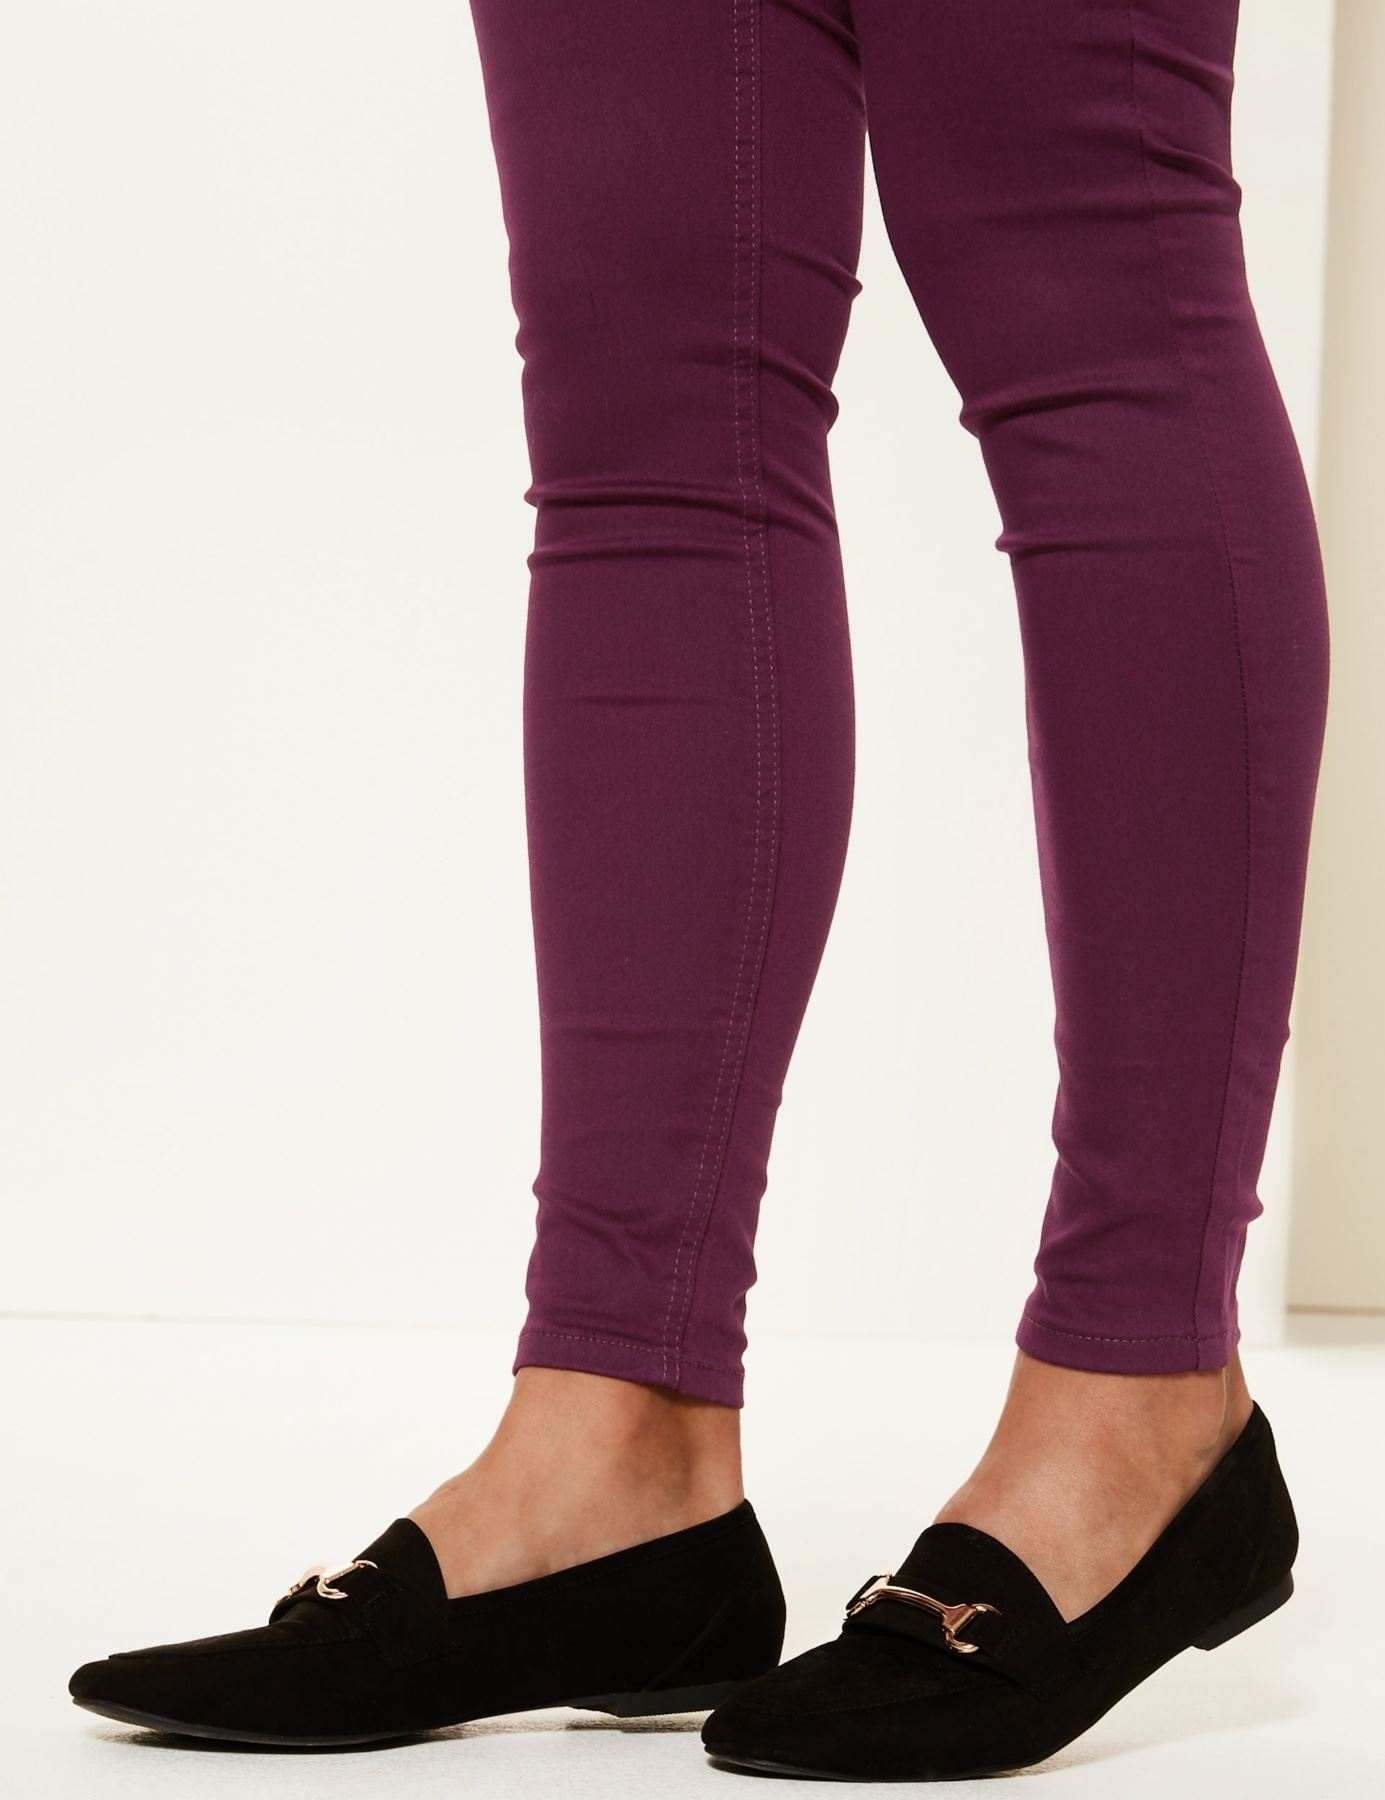 NEW-Ex-M-amp-S-Womens-Stretch-Fit-High-Waist-Skinny-Jeggings-Size-8-10-12-14-16-18 thumbnail 20